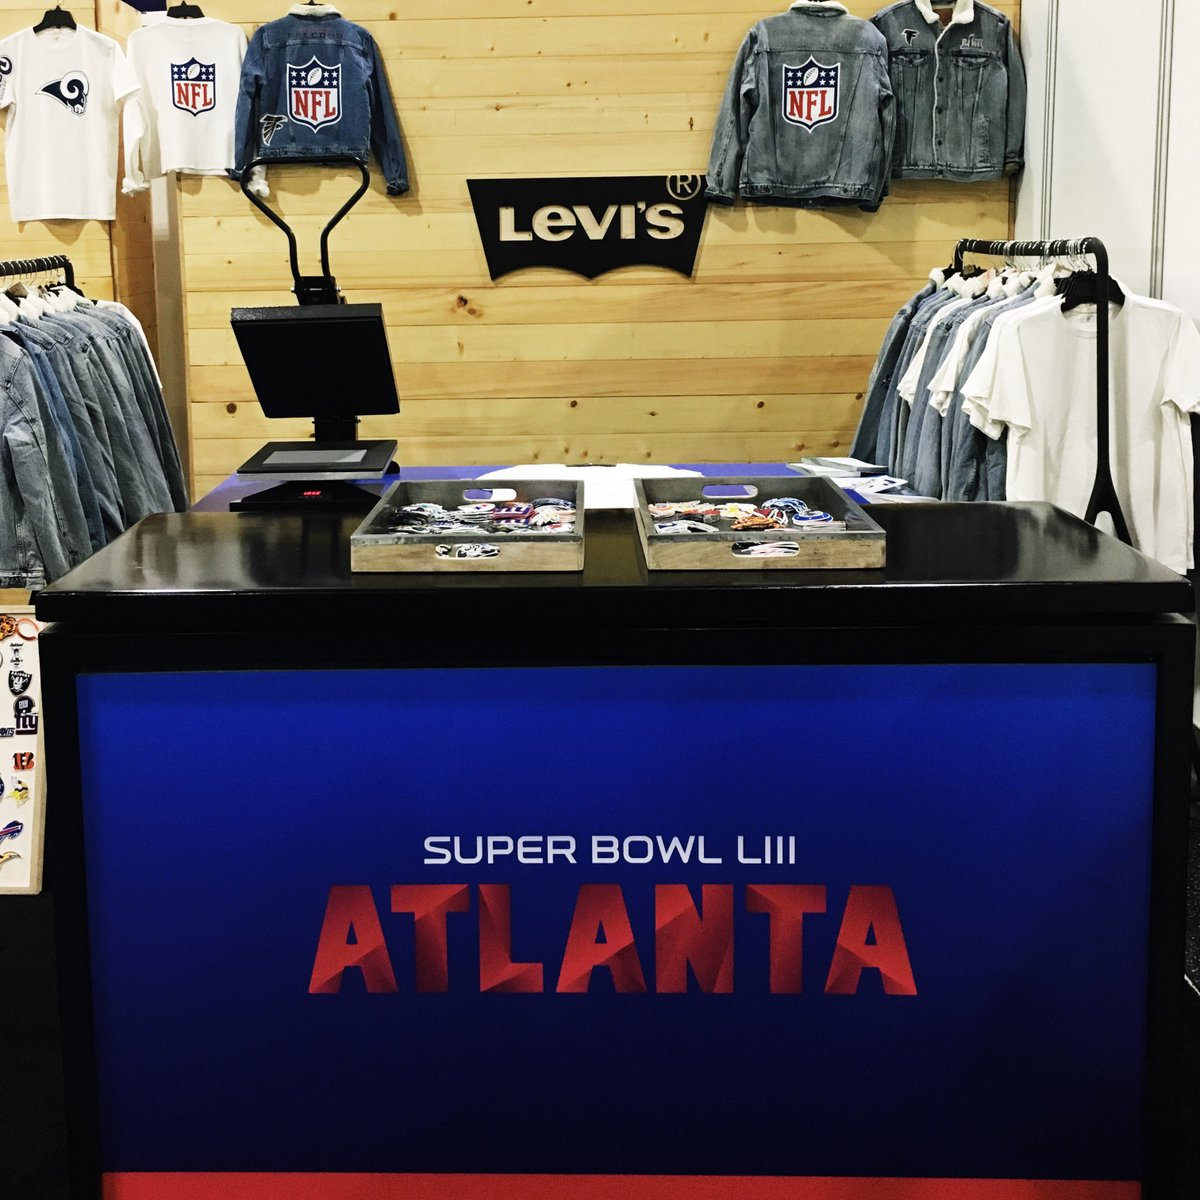 Atlanta-bound this weekend? Come visit the Levi's® pop-up Tailor Shop at the NFL Experience and get your custom gear for the game.